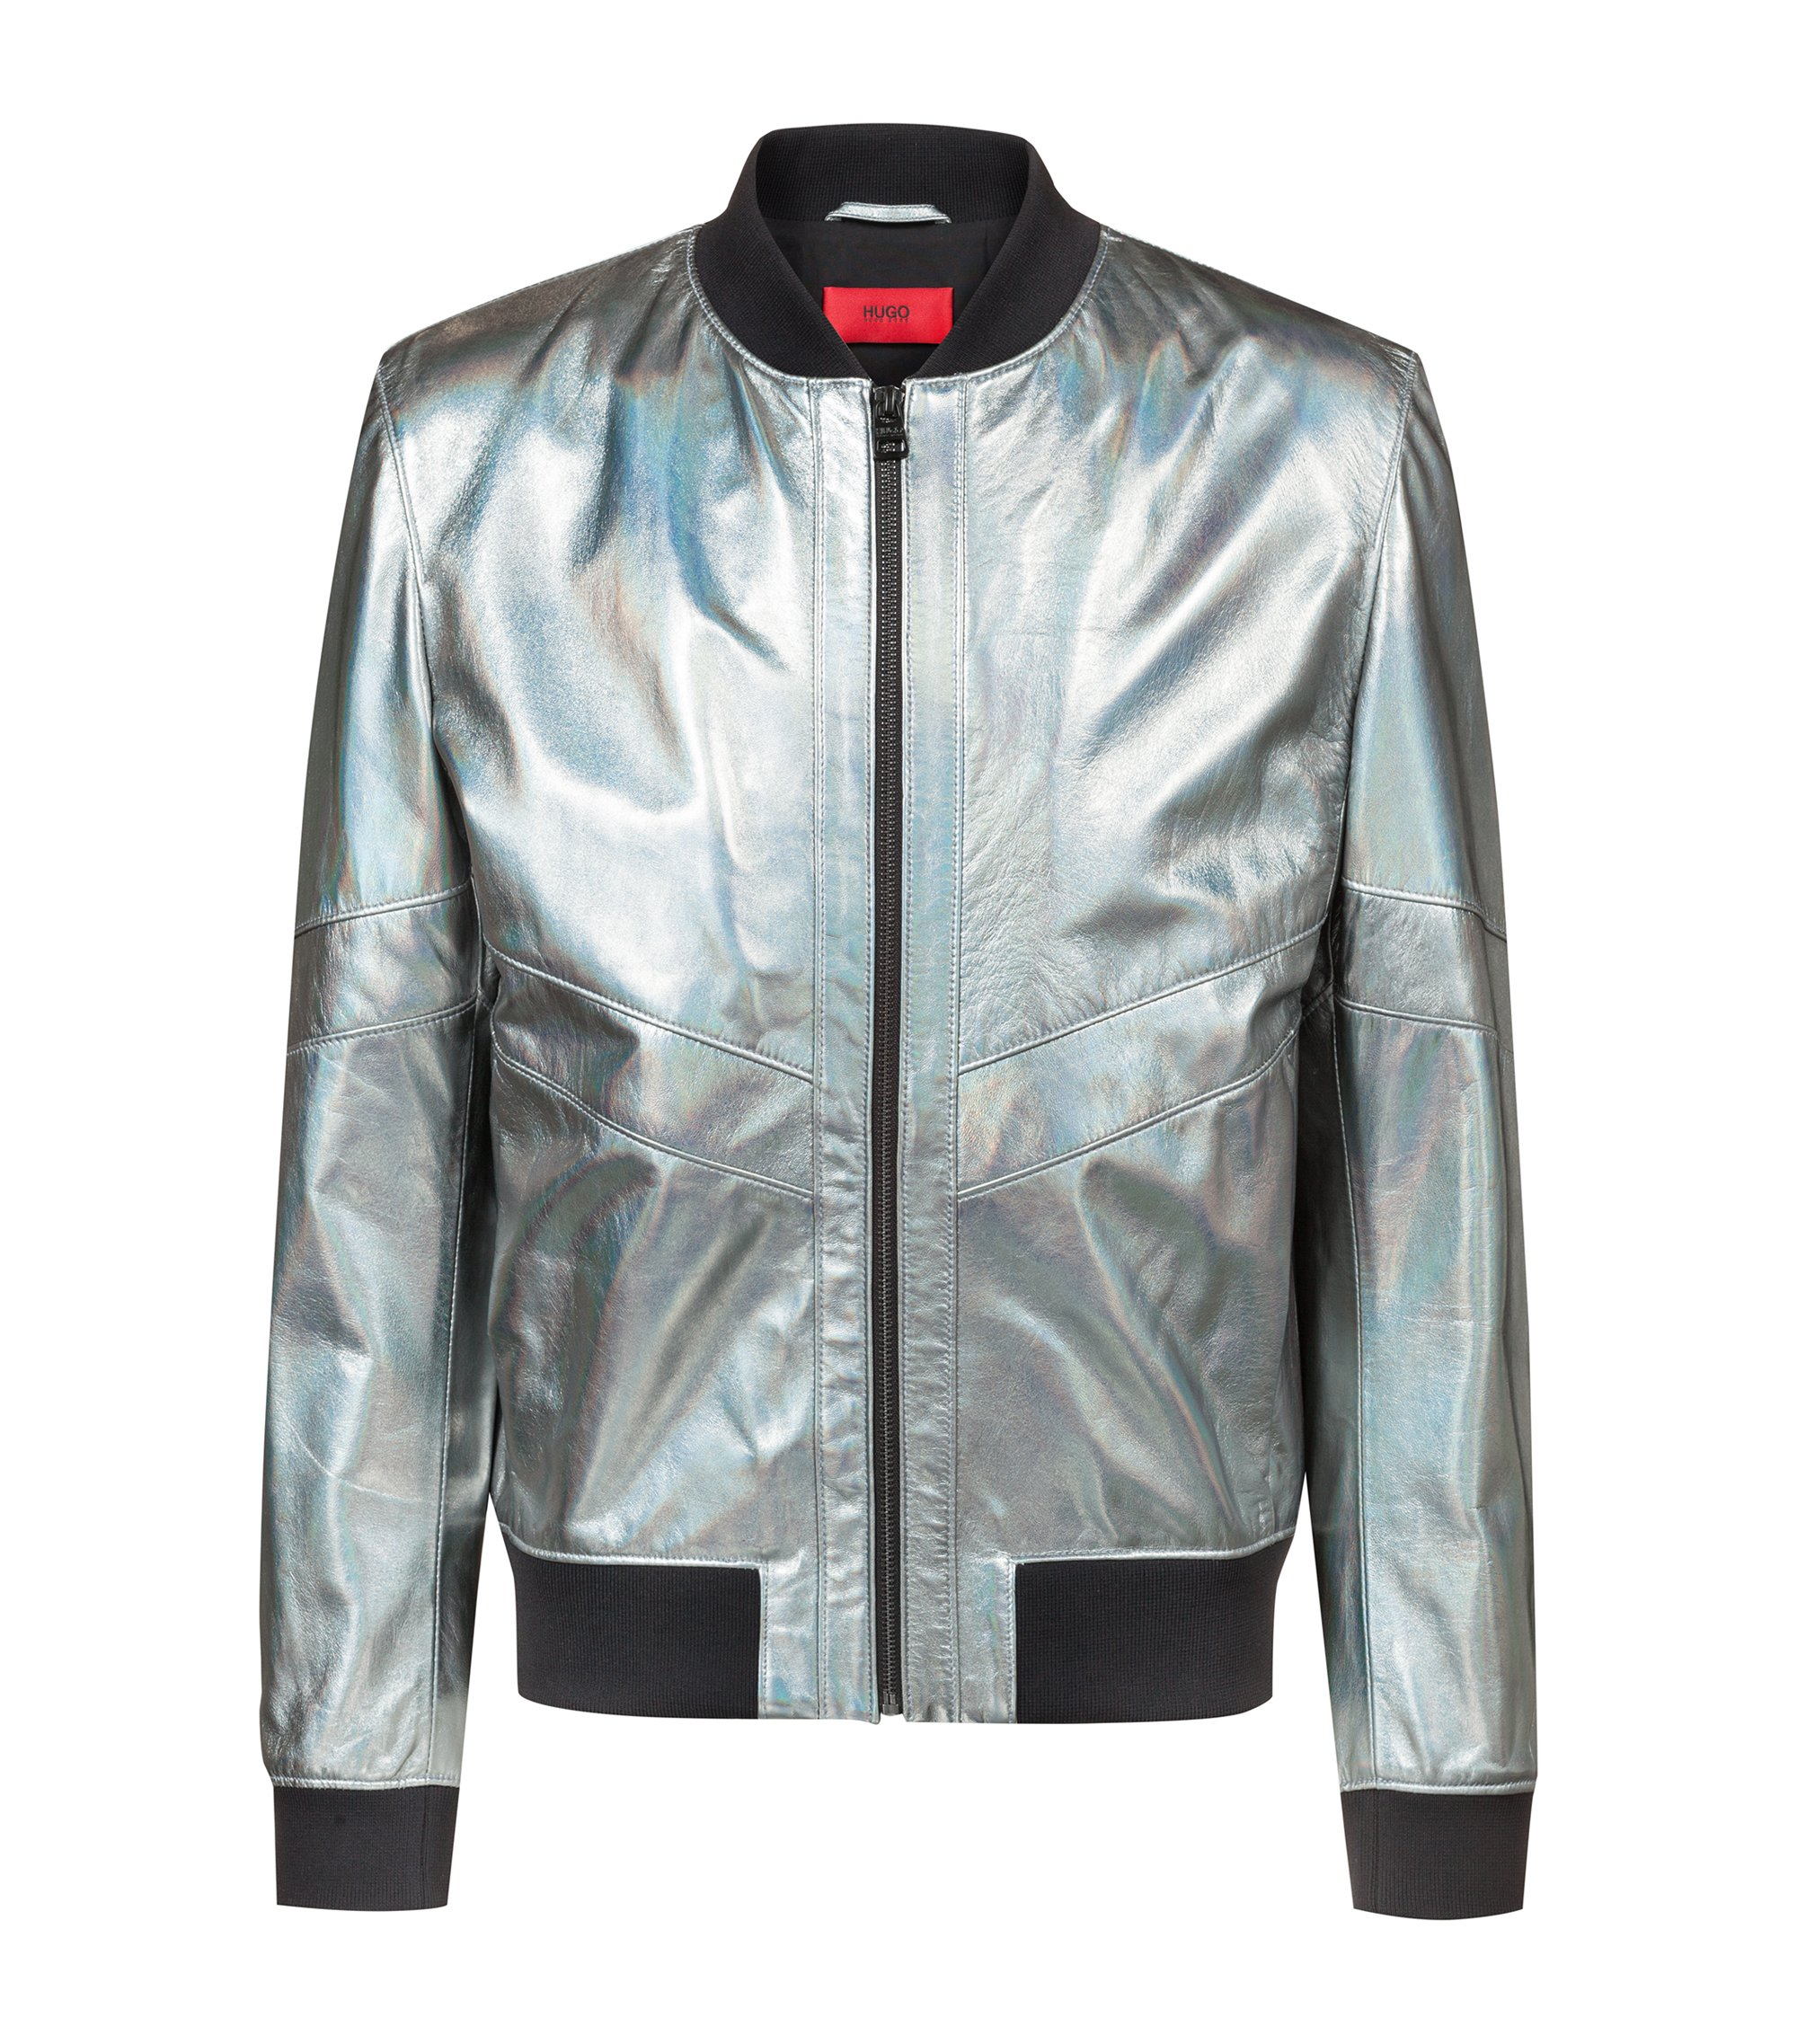 Regular-fit bomber jacket in metallic lambskin, Silver